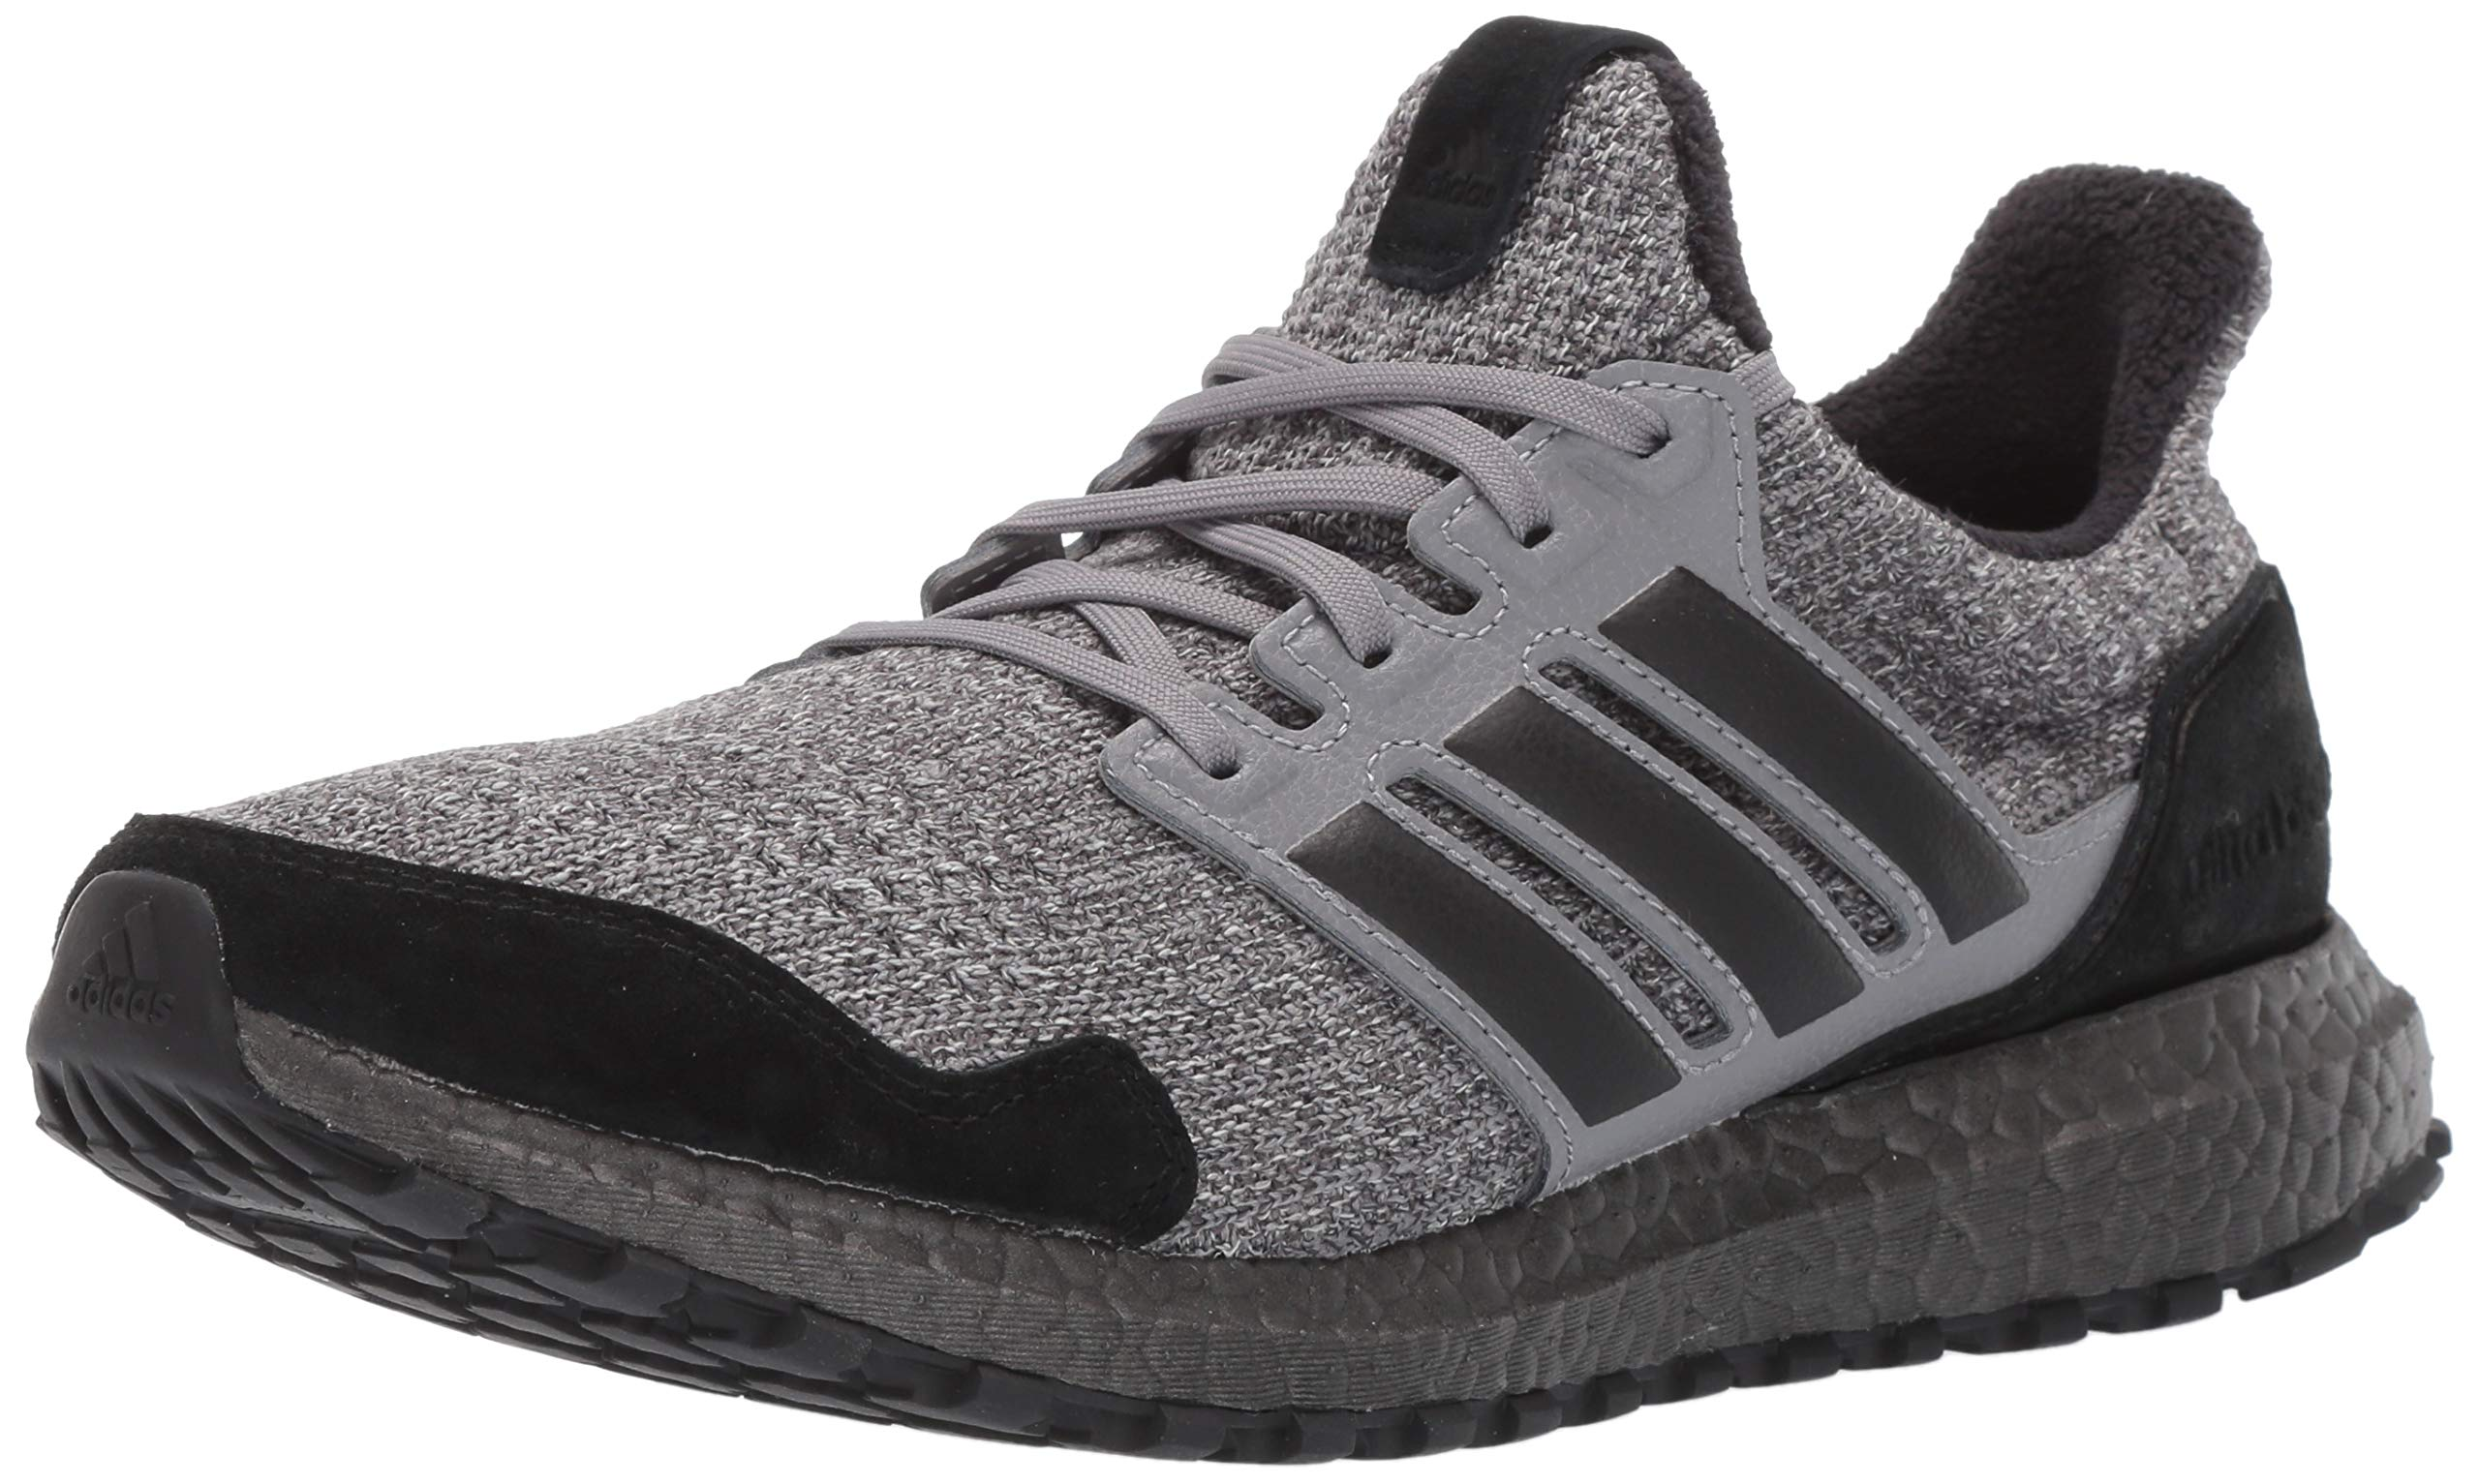 adidas x Game of Thrones Men's Ultraboost Running Shoes, House Stark, 10 M US